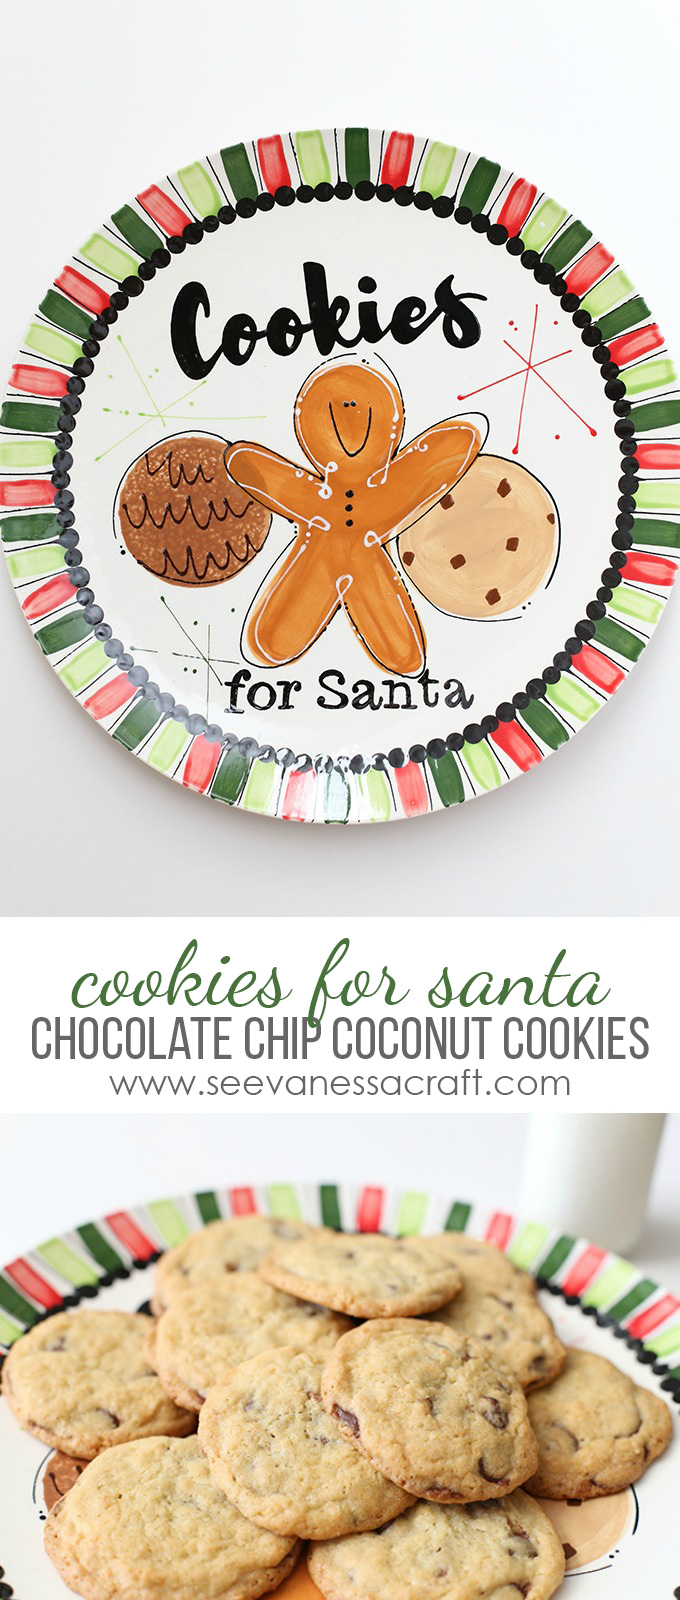 chocolate-chip-coconut-cookies-for-santa-copy